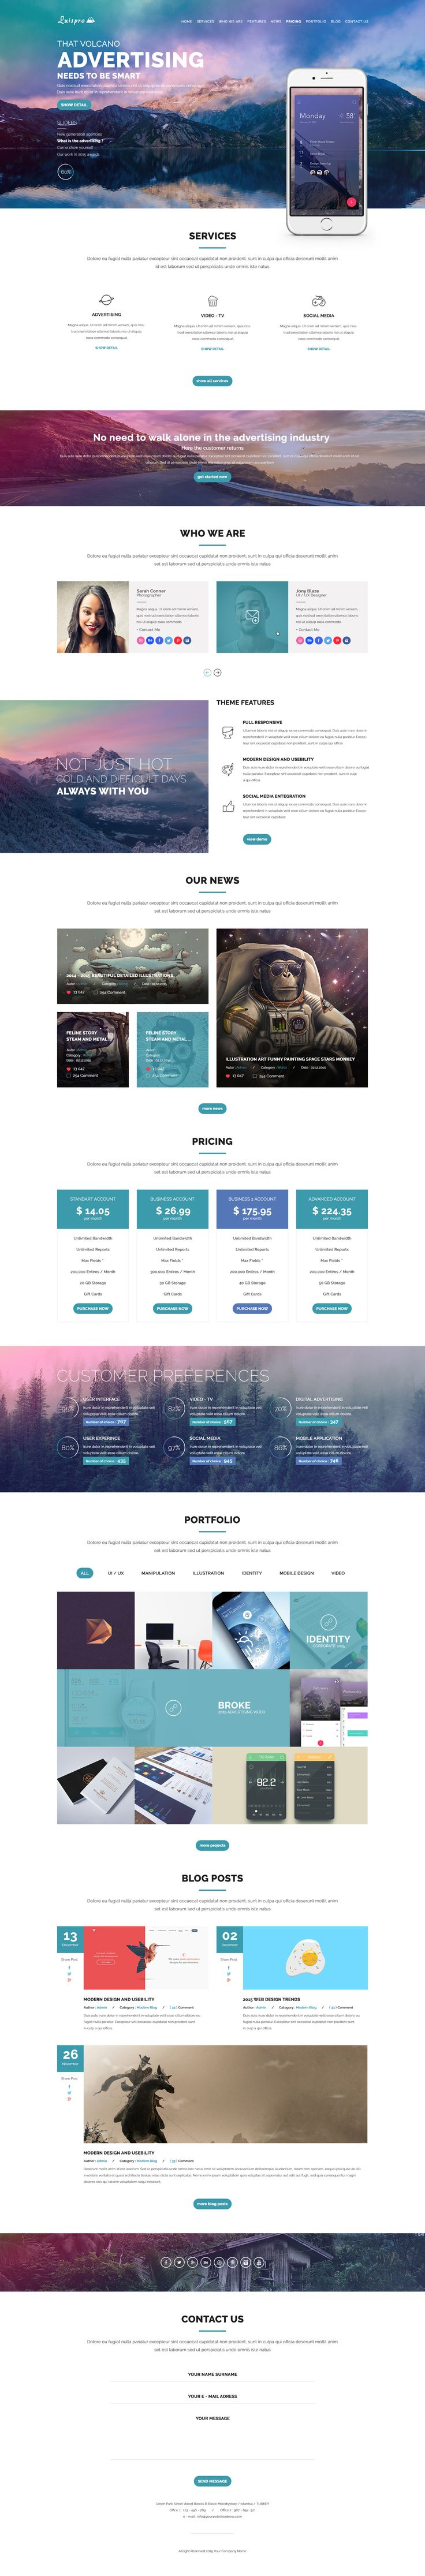 Luispro - Flat & User Friendly Landing Page Design #web #design #ui